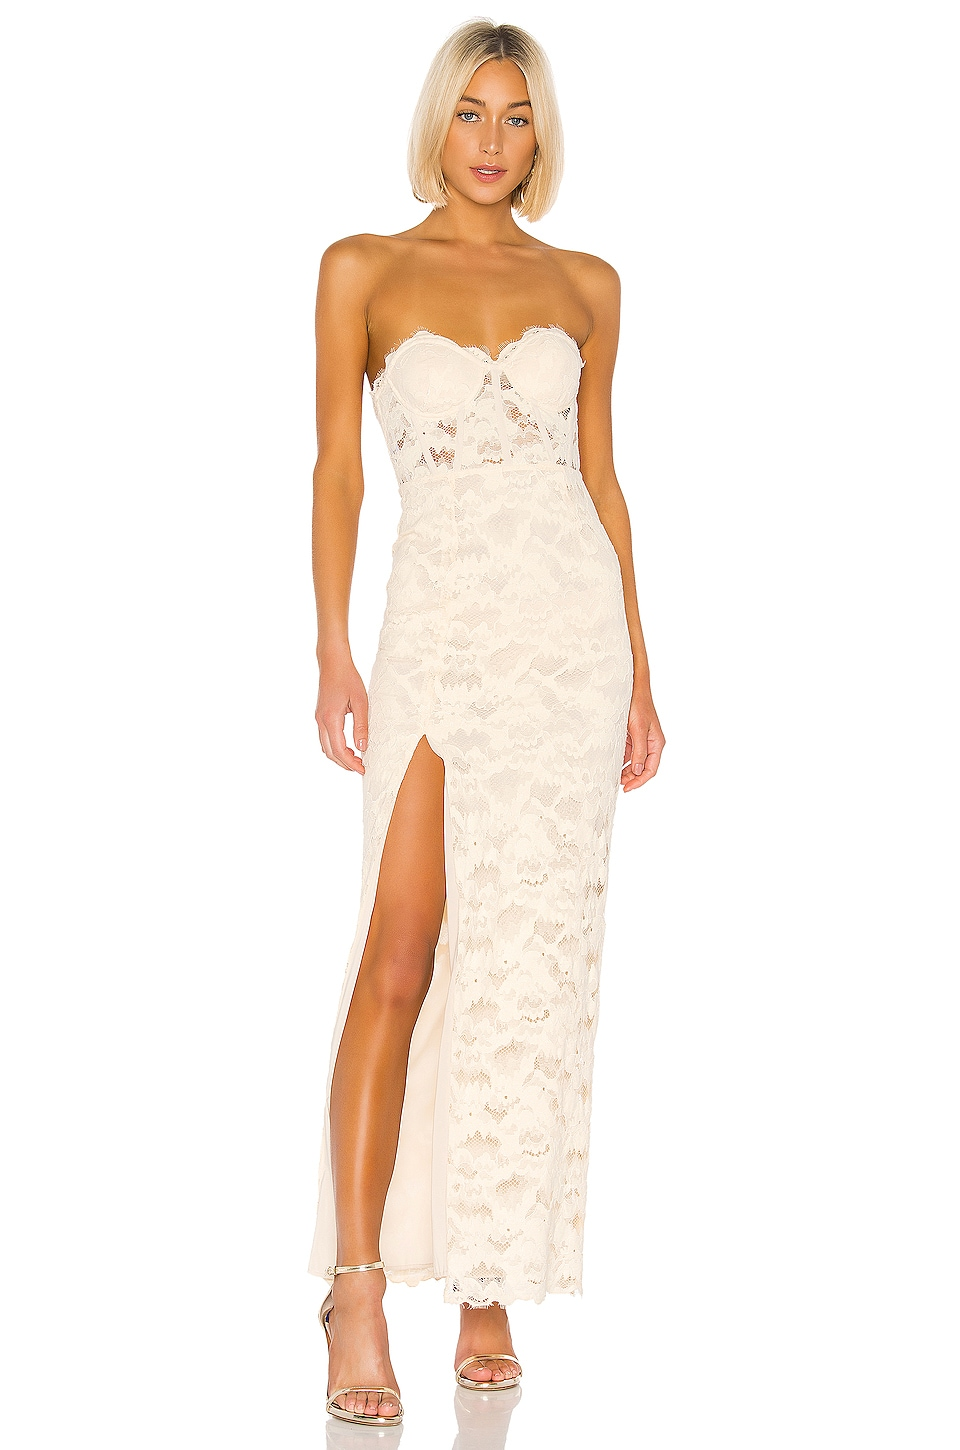 Lovers + Friends Ferraro Gown in Nude